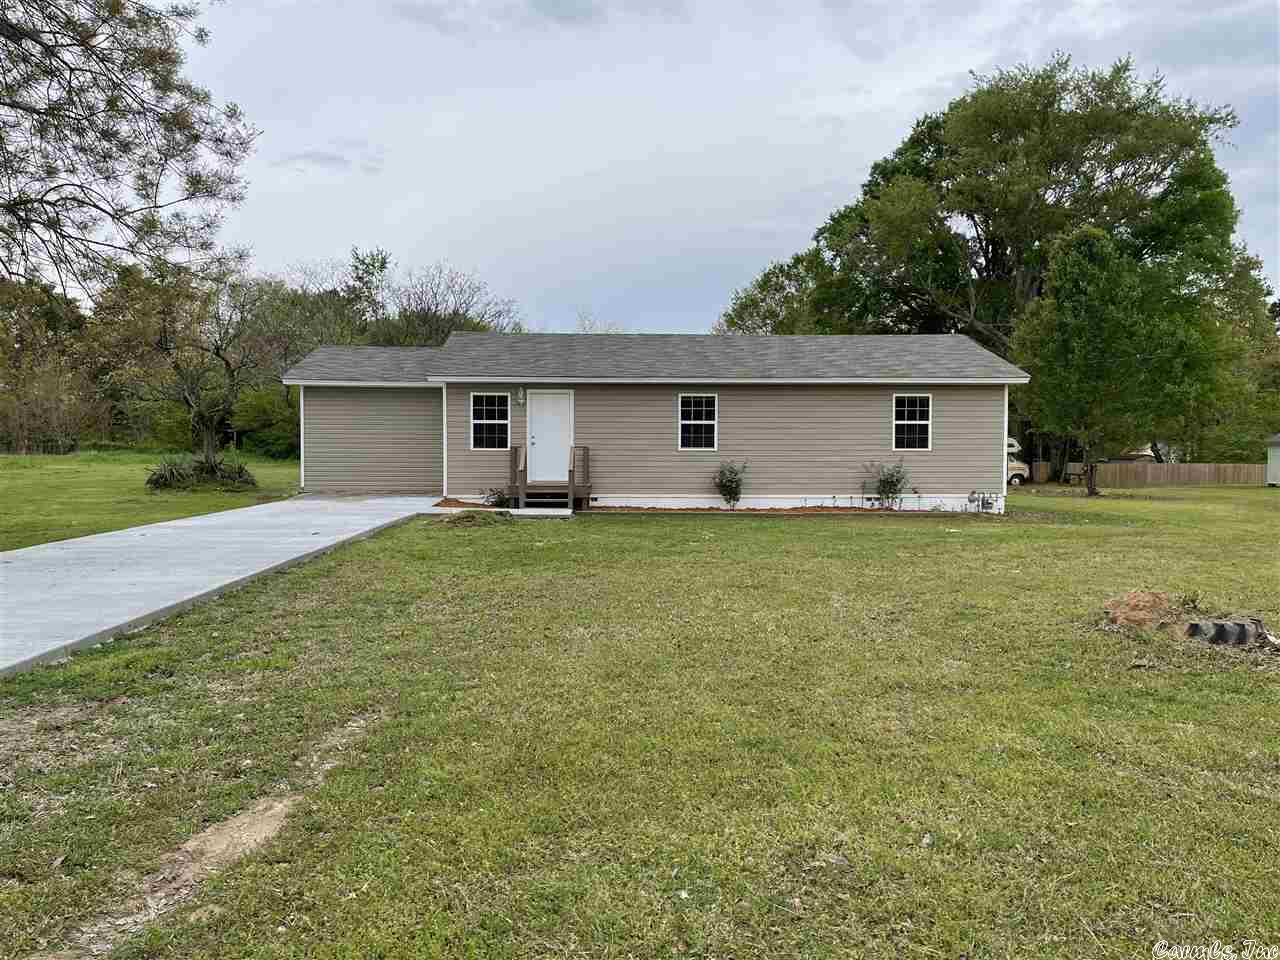 23912 Sardis Rd, Mabelvale, Arkansas 72103, 4 Bedrooms Bedrooms, ,1 BathroomBathrooms,Single Family,For Sale,23912 Sardis Rd,1,21010934